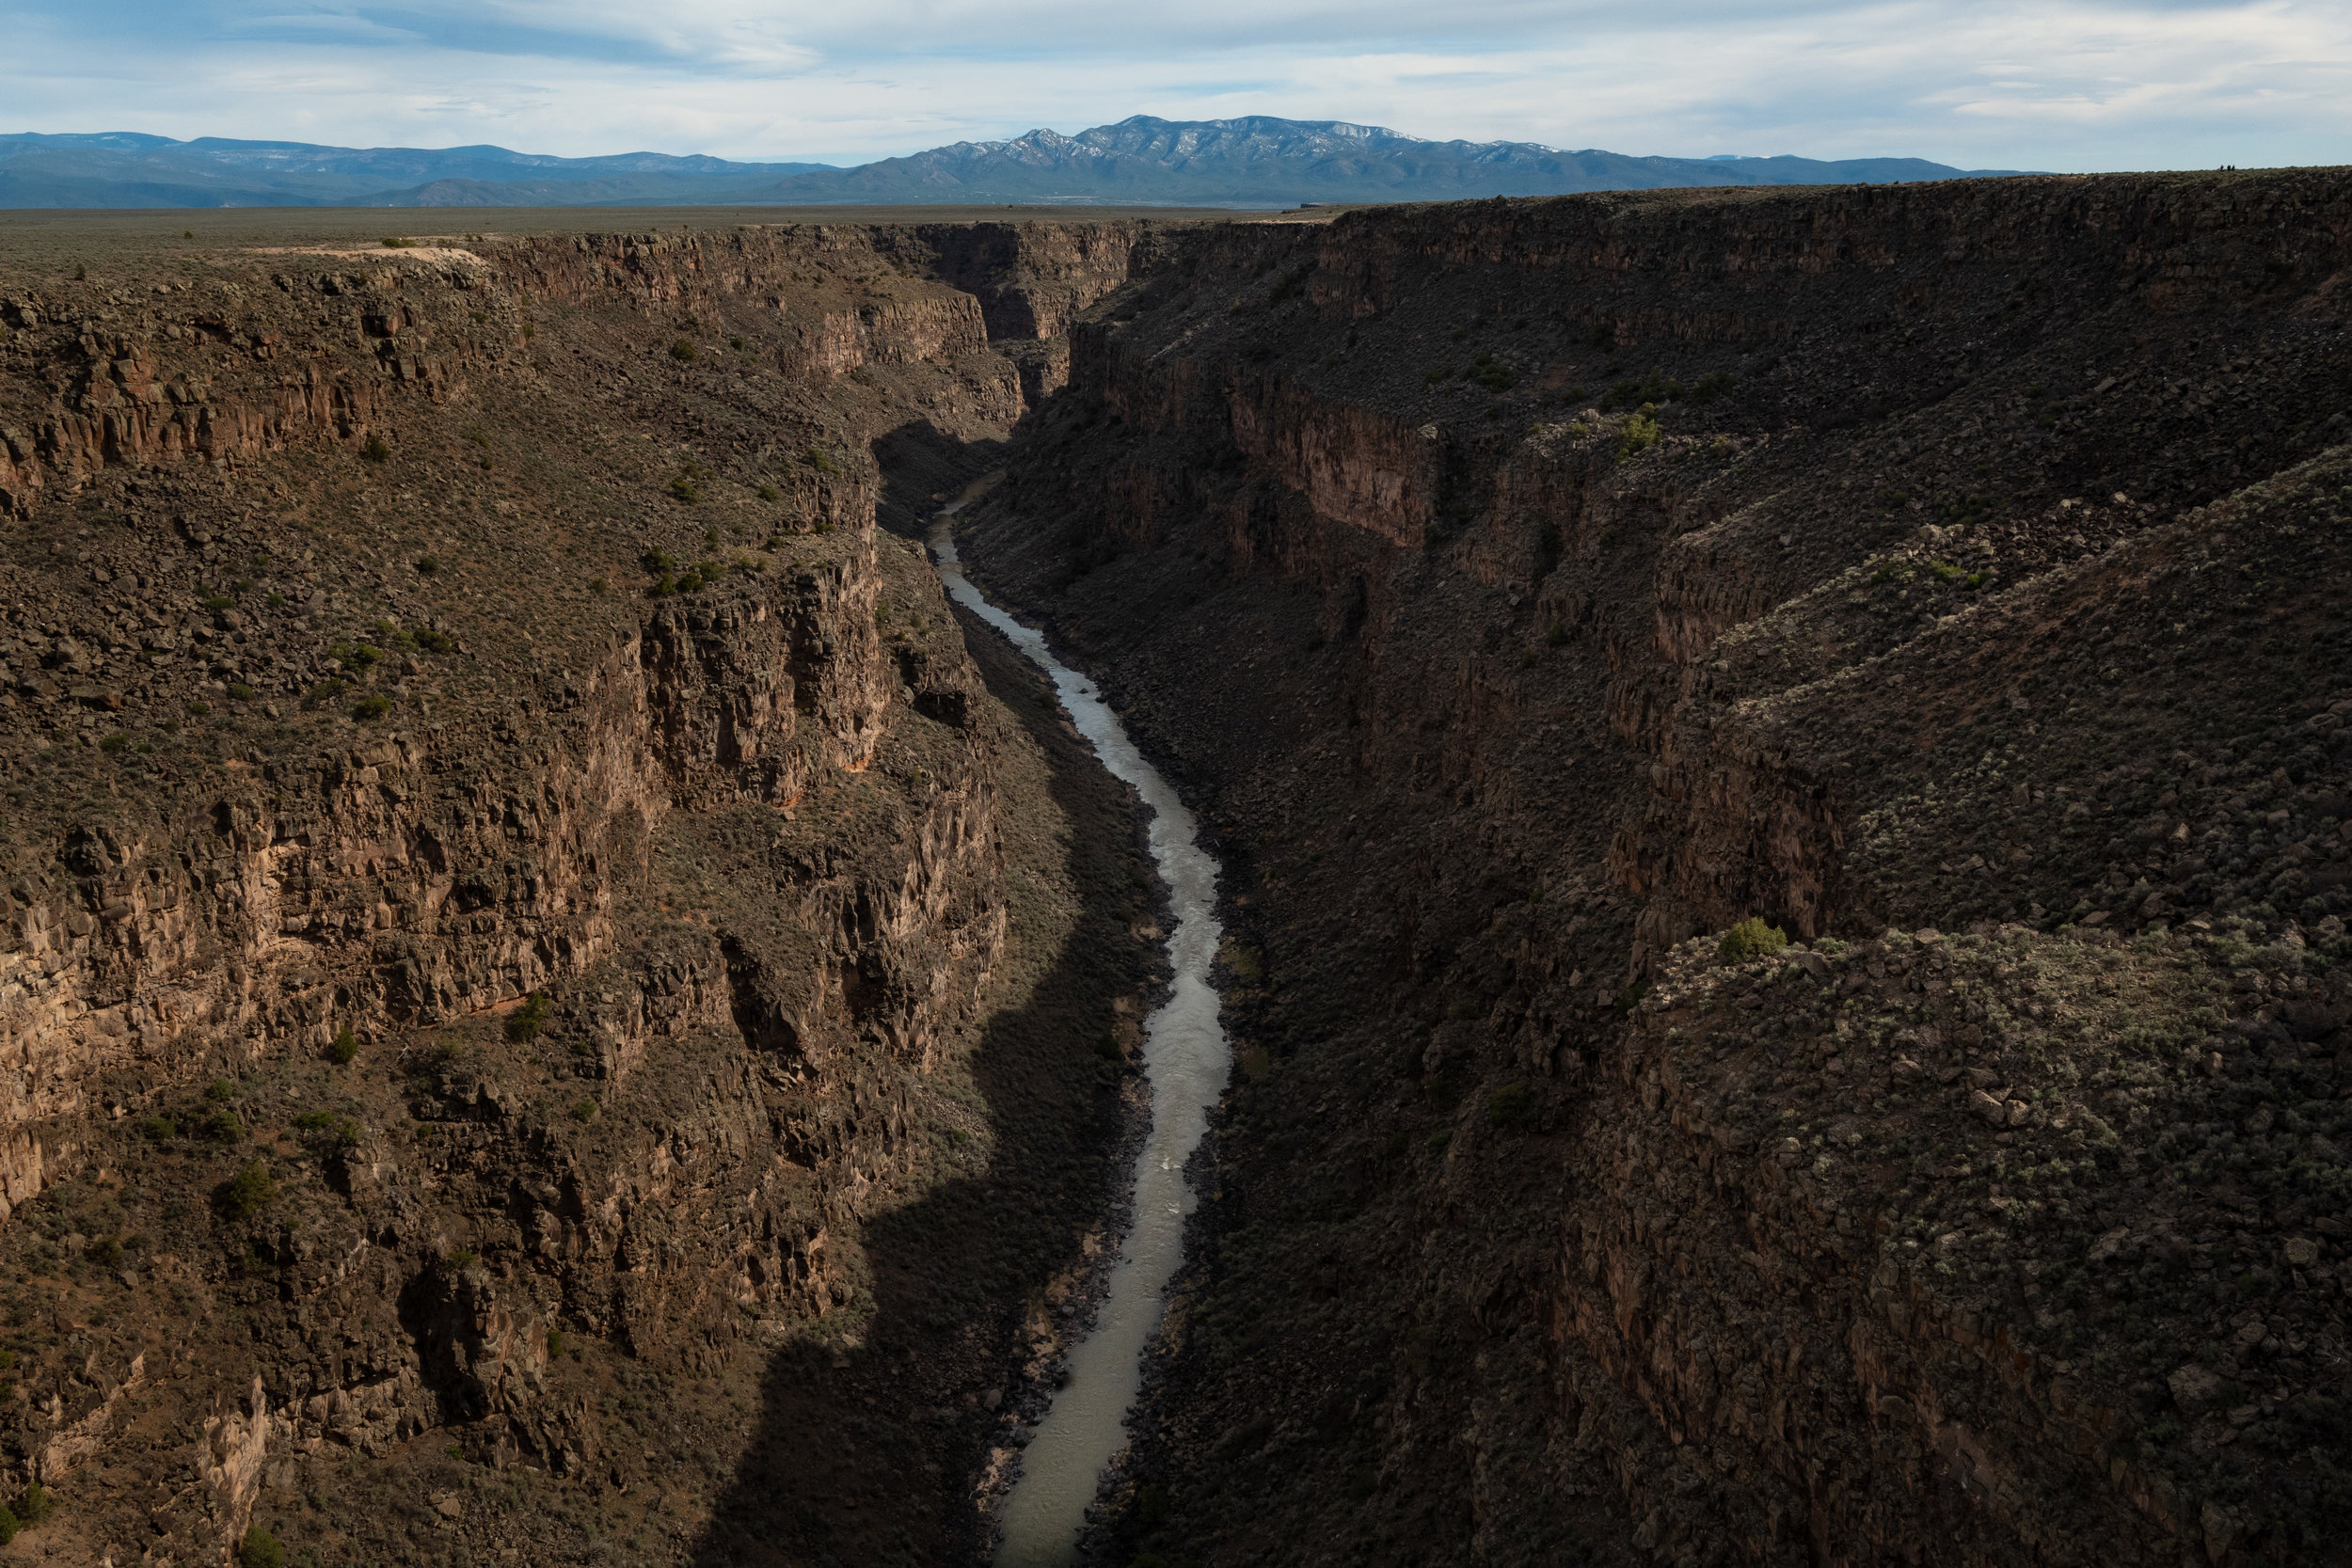 A popular attraction outside Taos, the Rio Grande Gorge Bridge is the second highest bridge on the US Highway System. Originating in Colorado, the Rio Grande flows 1,885 miles cutting the border between Texas and Mexico and emptying into the Gulf .